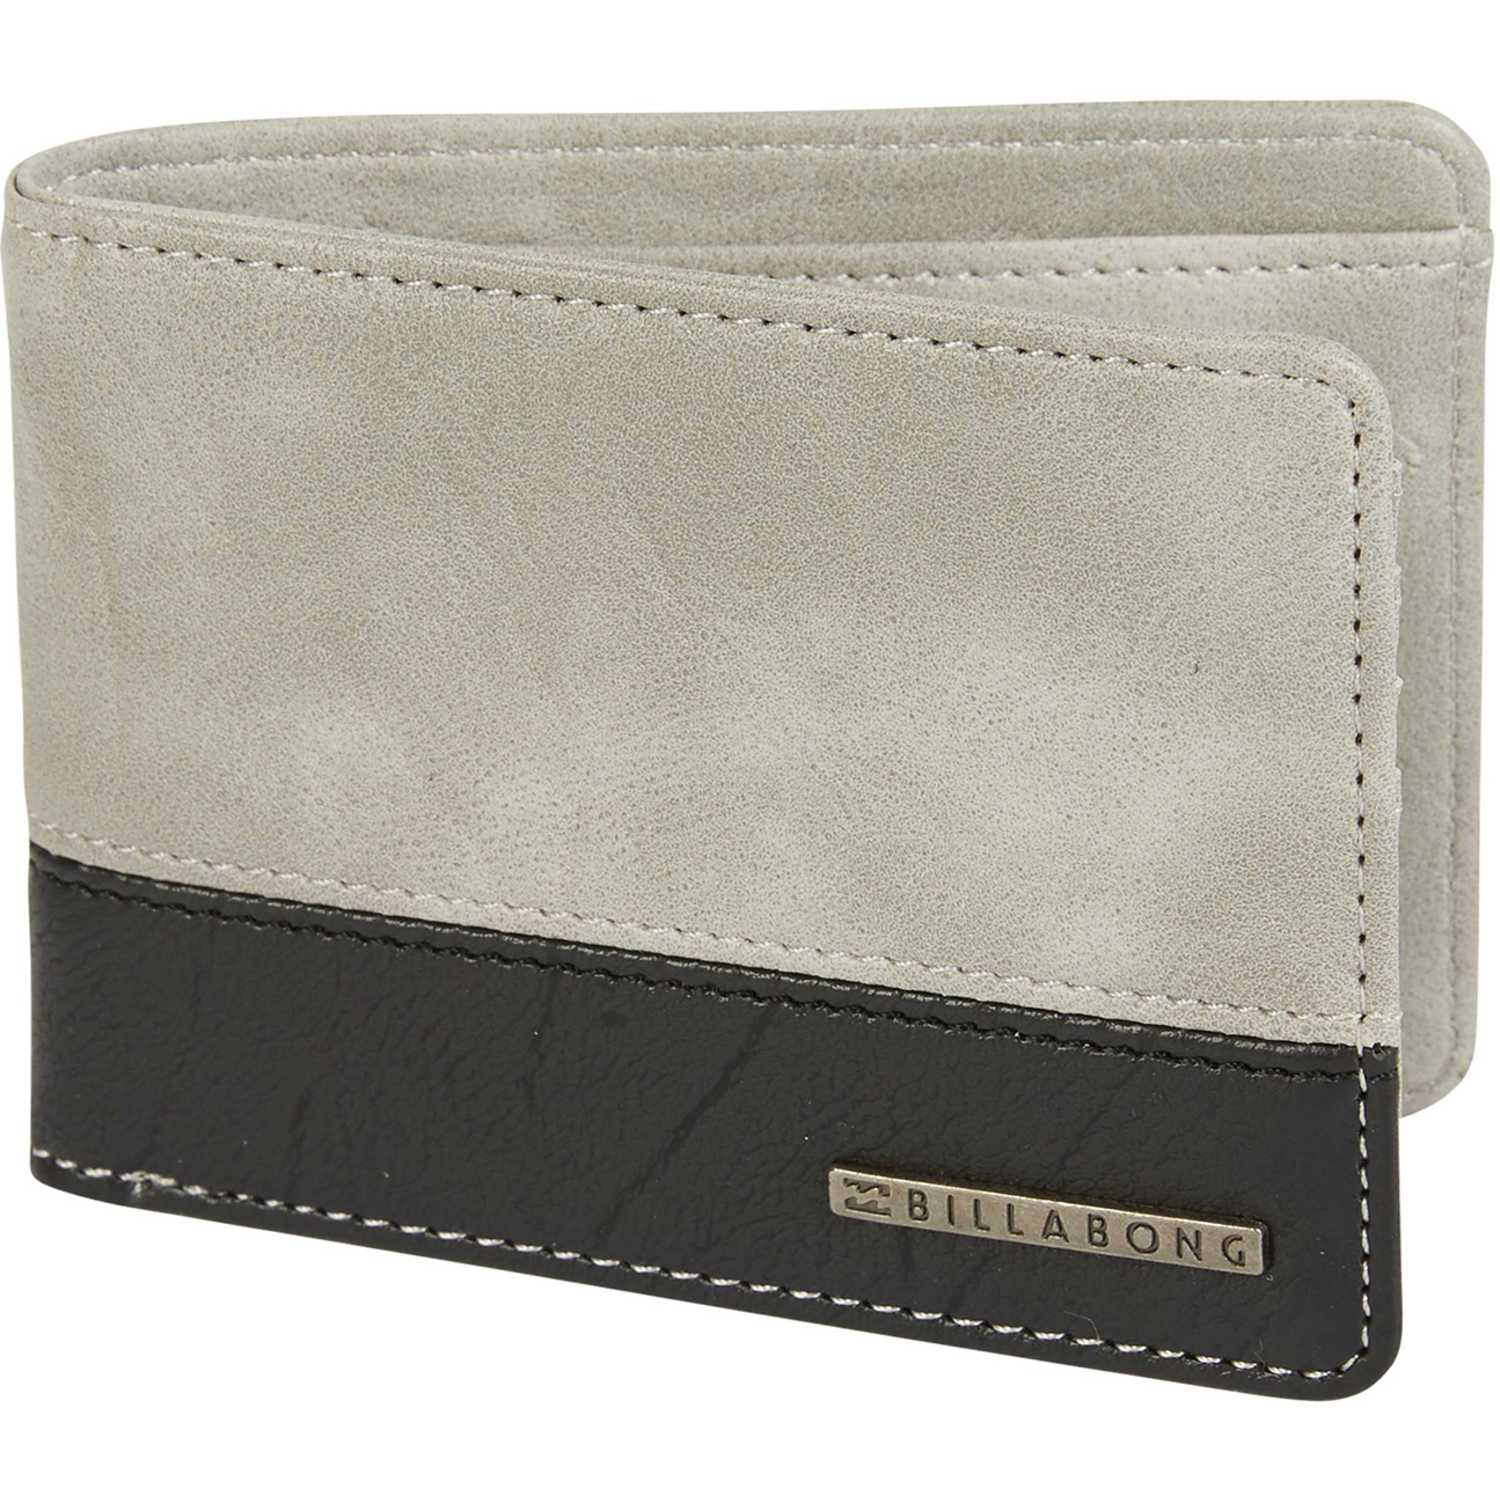 Billabong dimension wallet Hueso / Negro Billeteras